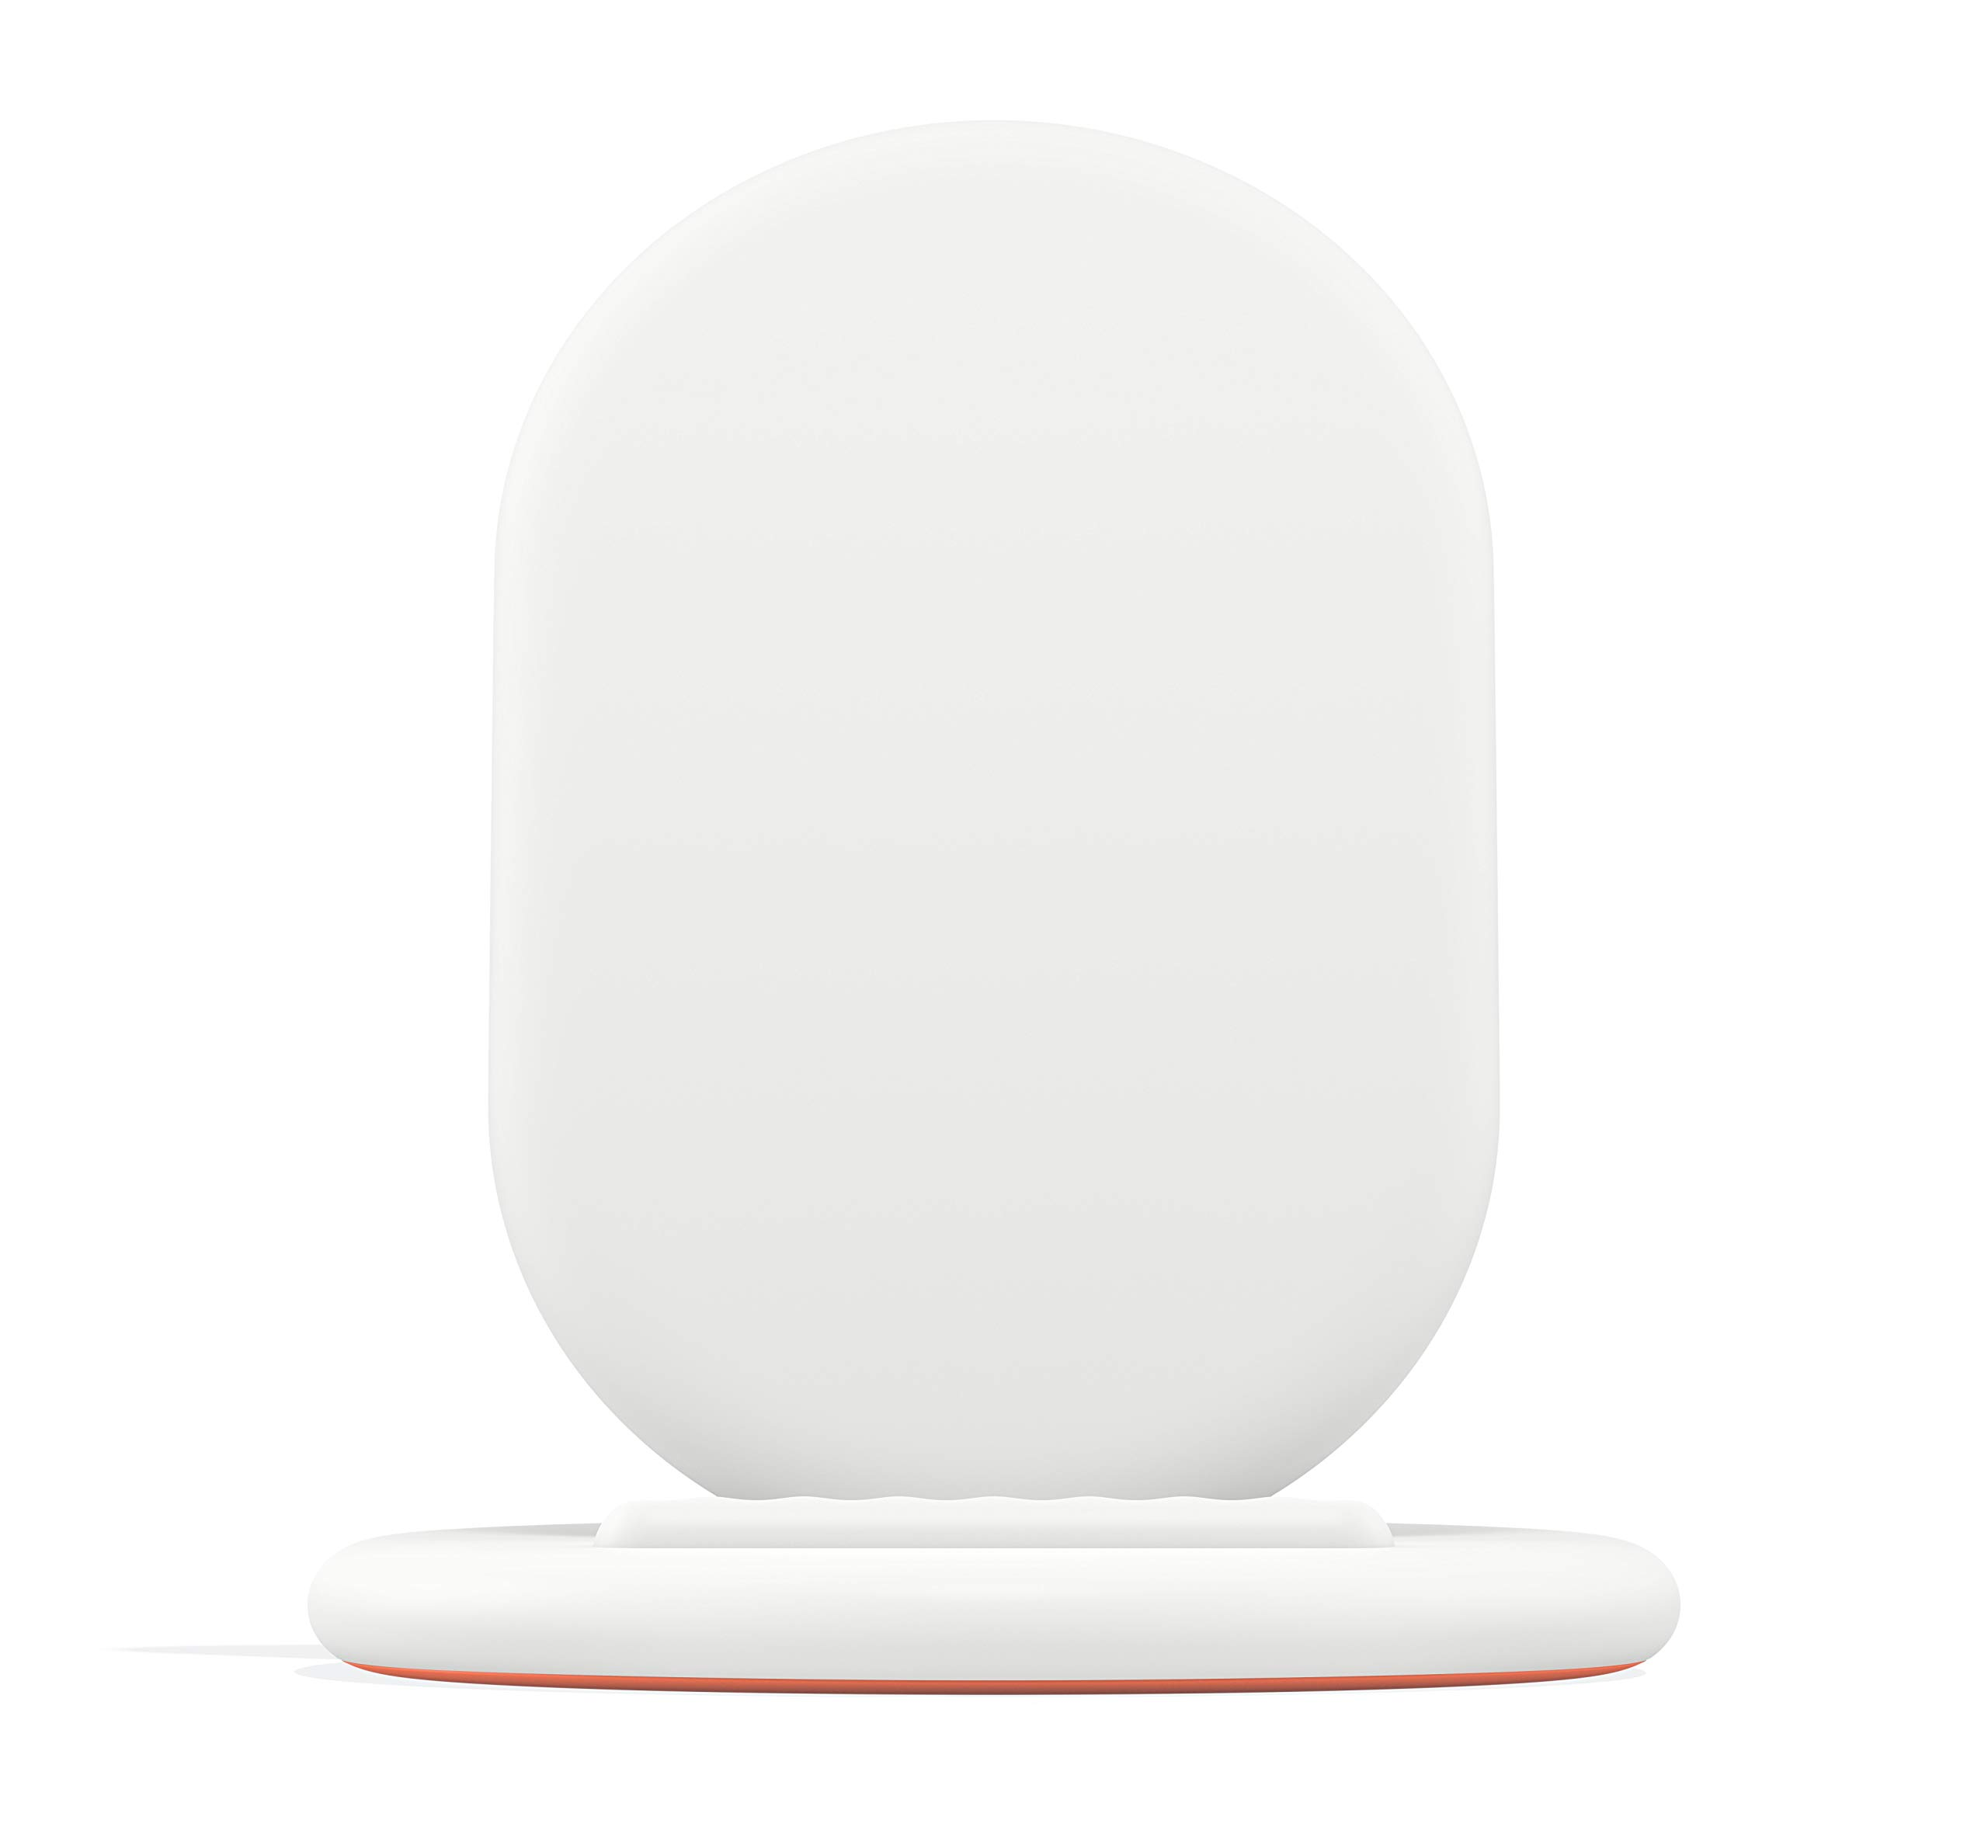 Google Wireless Charger for Pixel 3, Pixel 3XL - White by Google